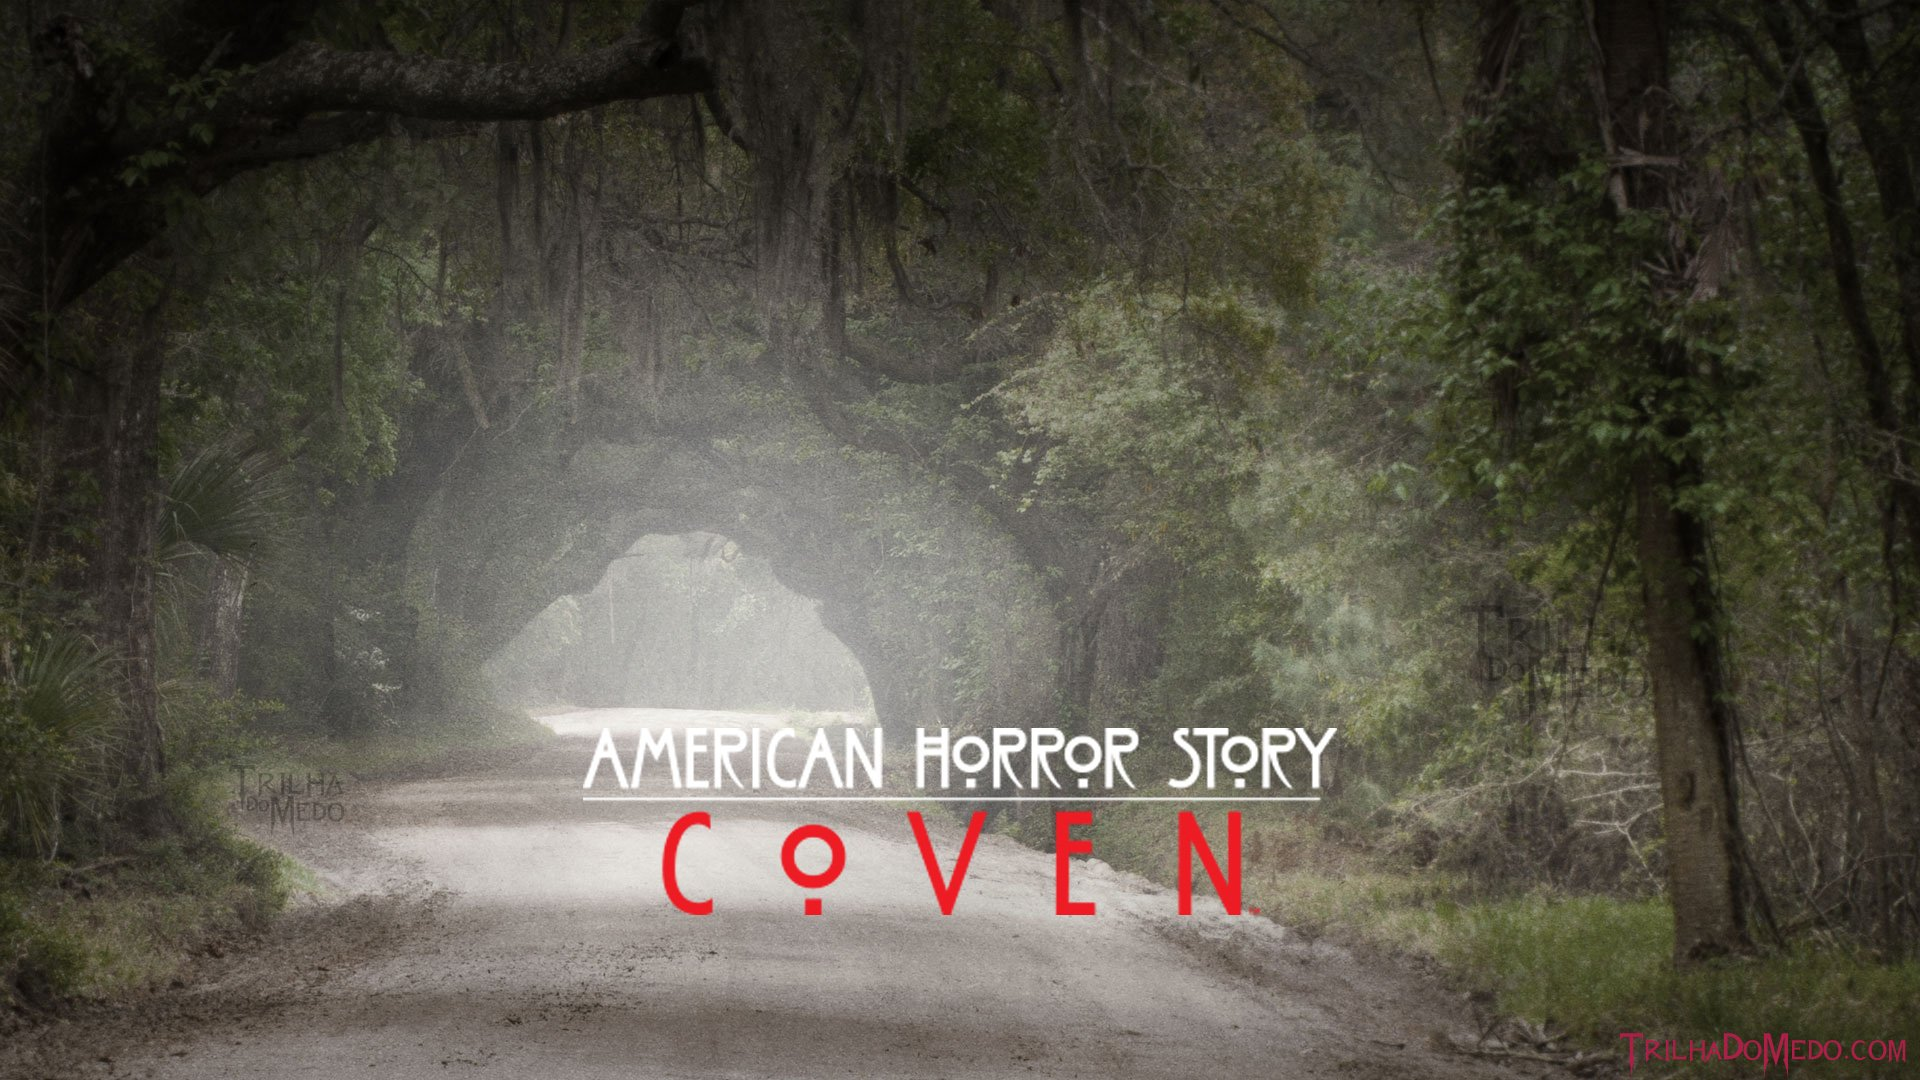 American Horror Story Coven Hd Wallpaper Background Image